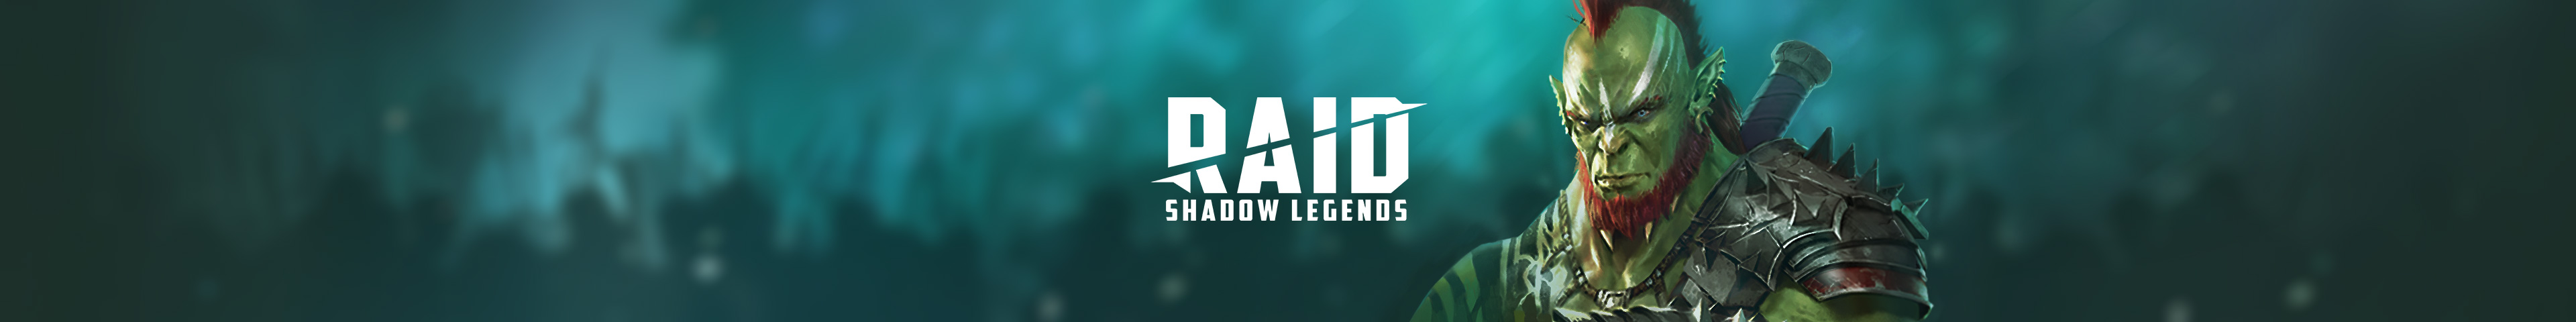 RAID: Shadow Legends RU